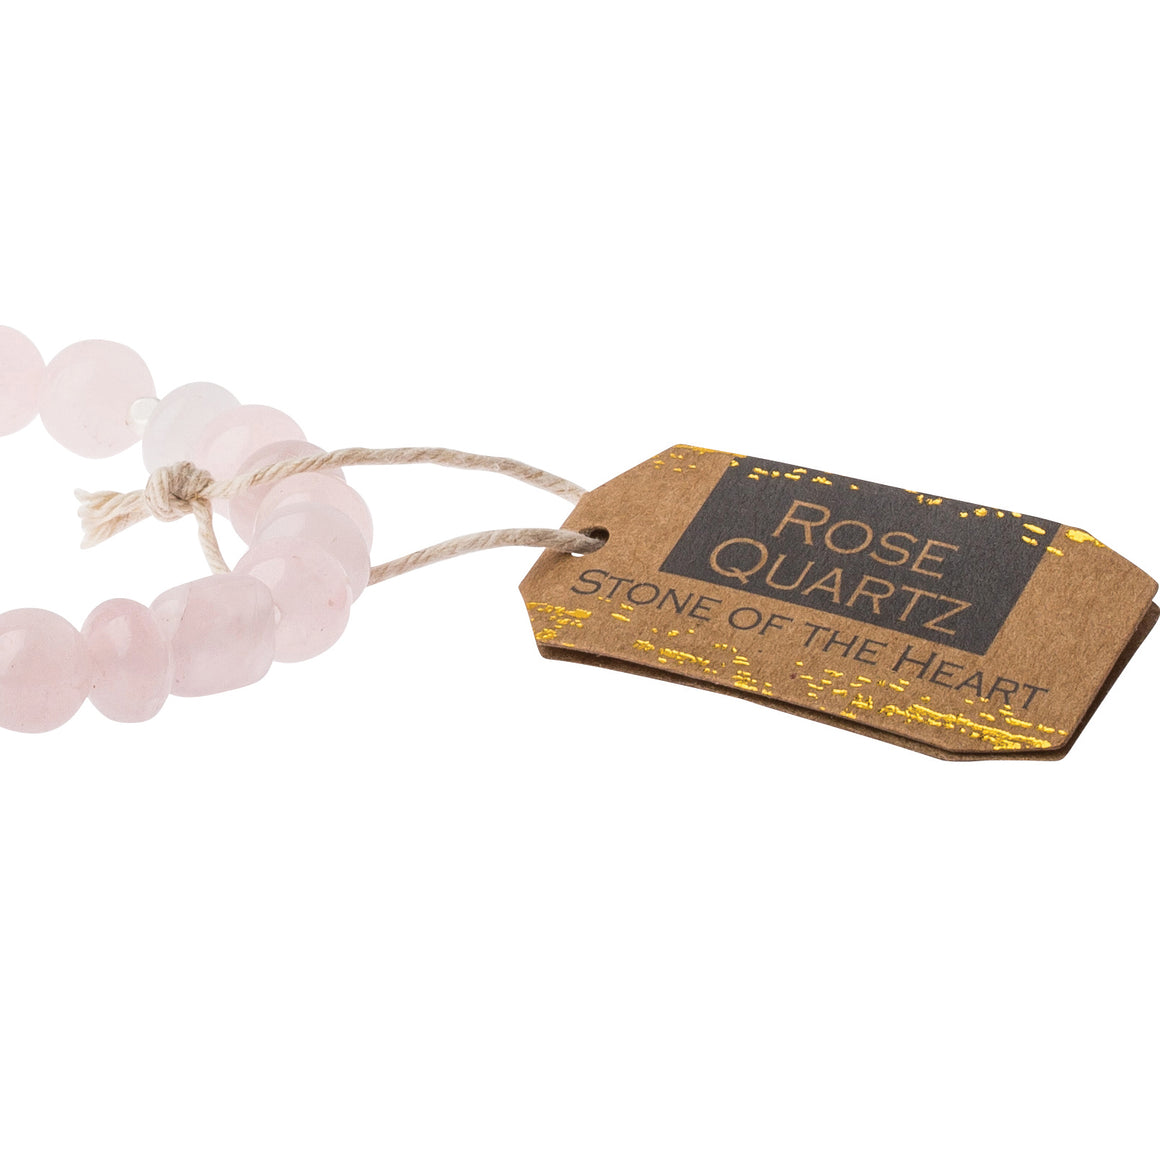 Rose Quartz Stone Bracelet - Stone of the Heart